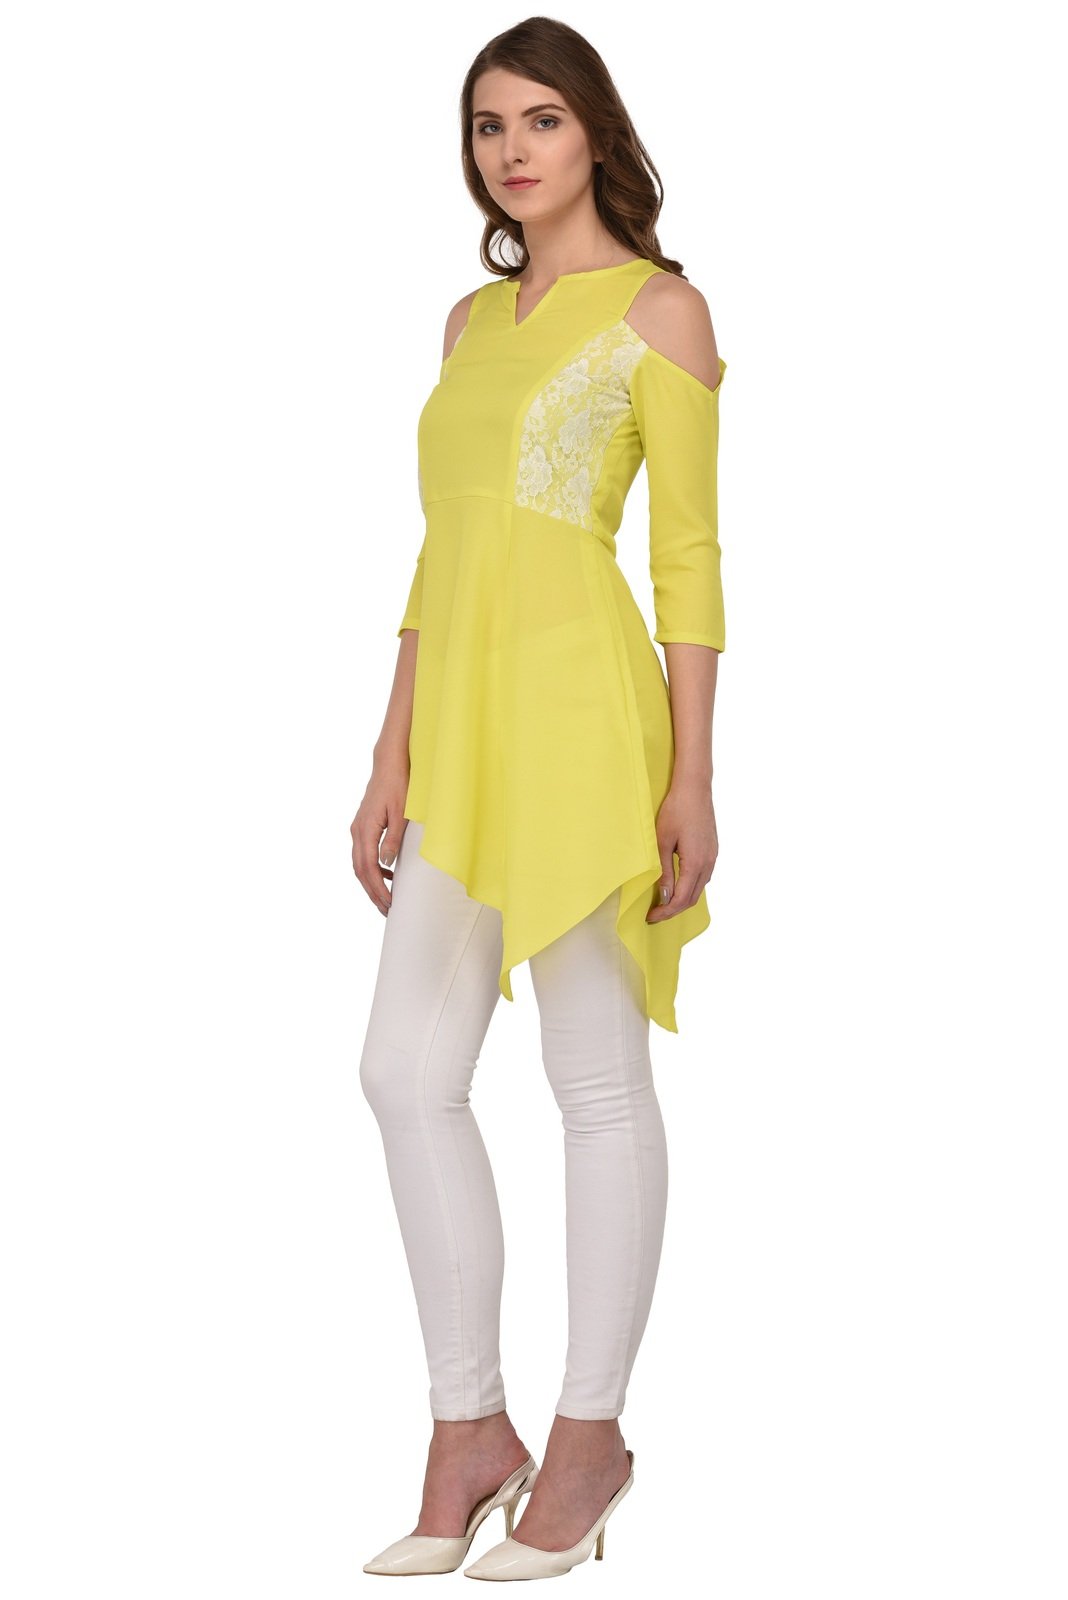 Tunics for women Moss Tunics Crepe Lime Green Cold Shoulder top Christmas gifts image 3